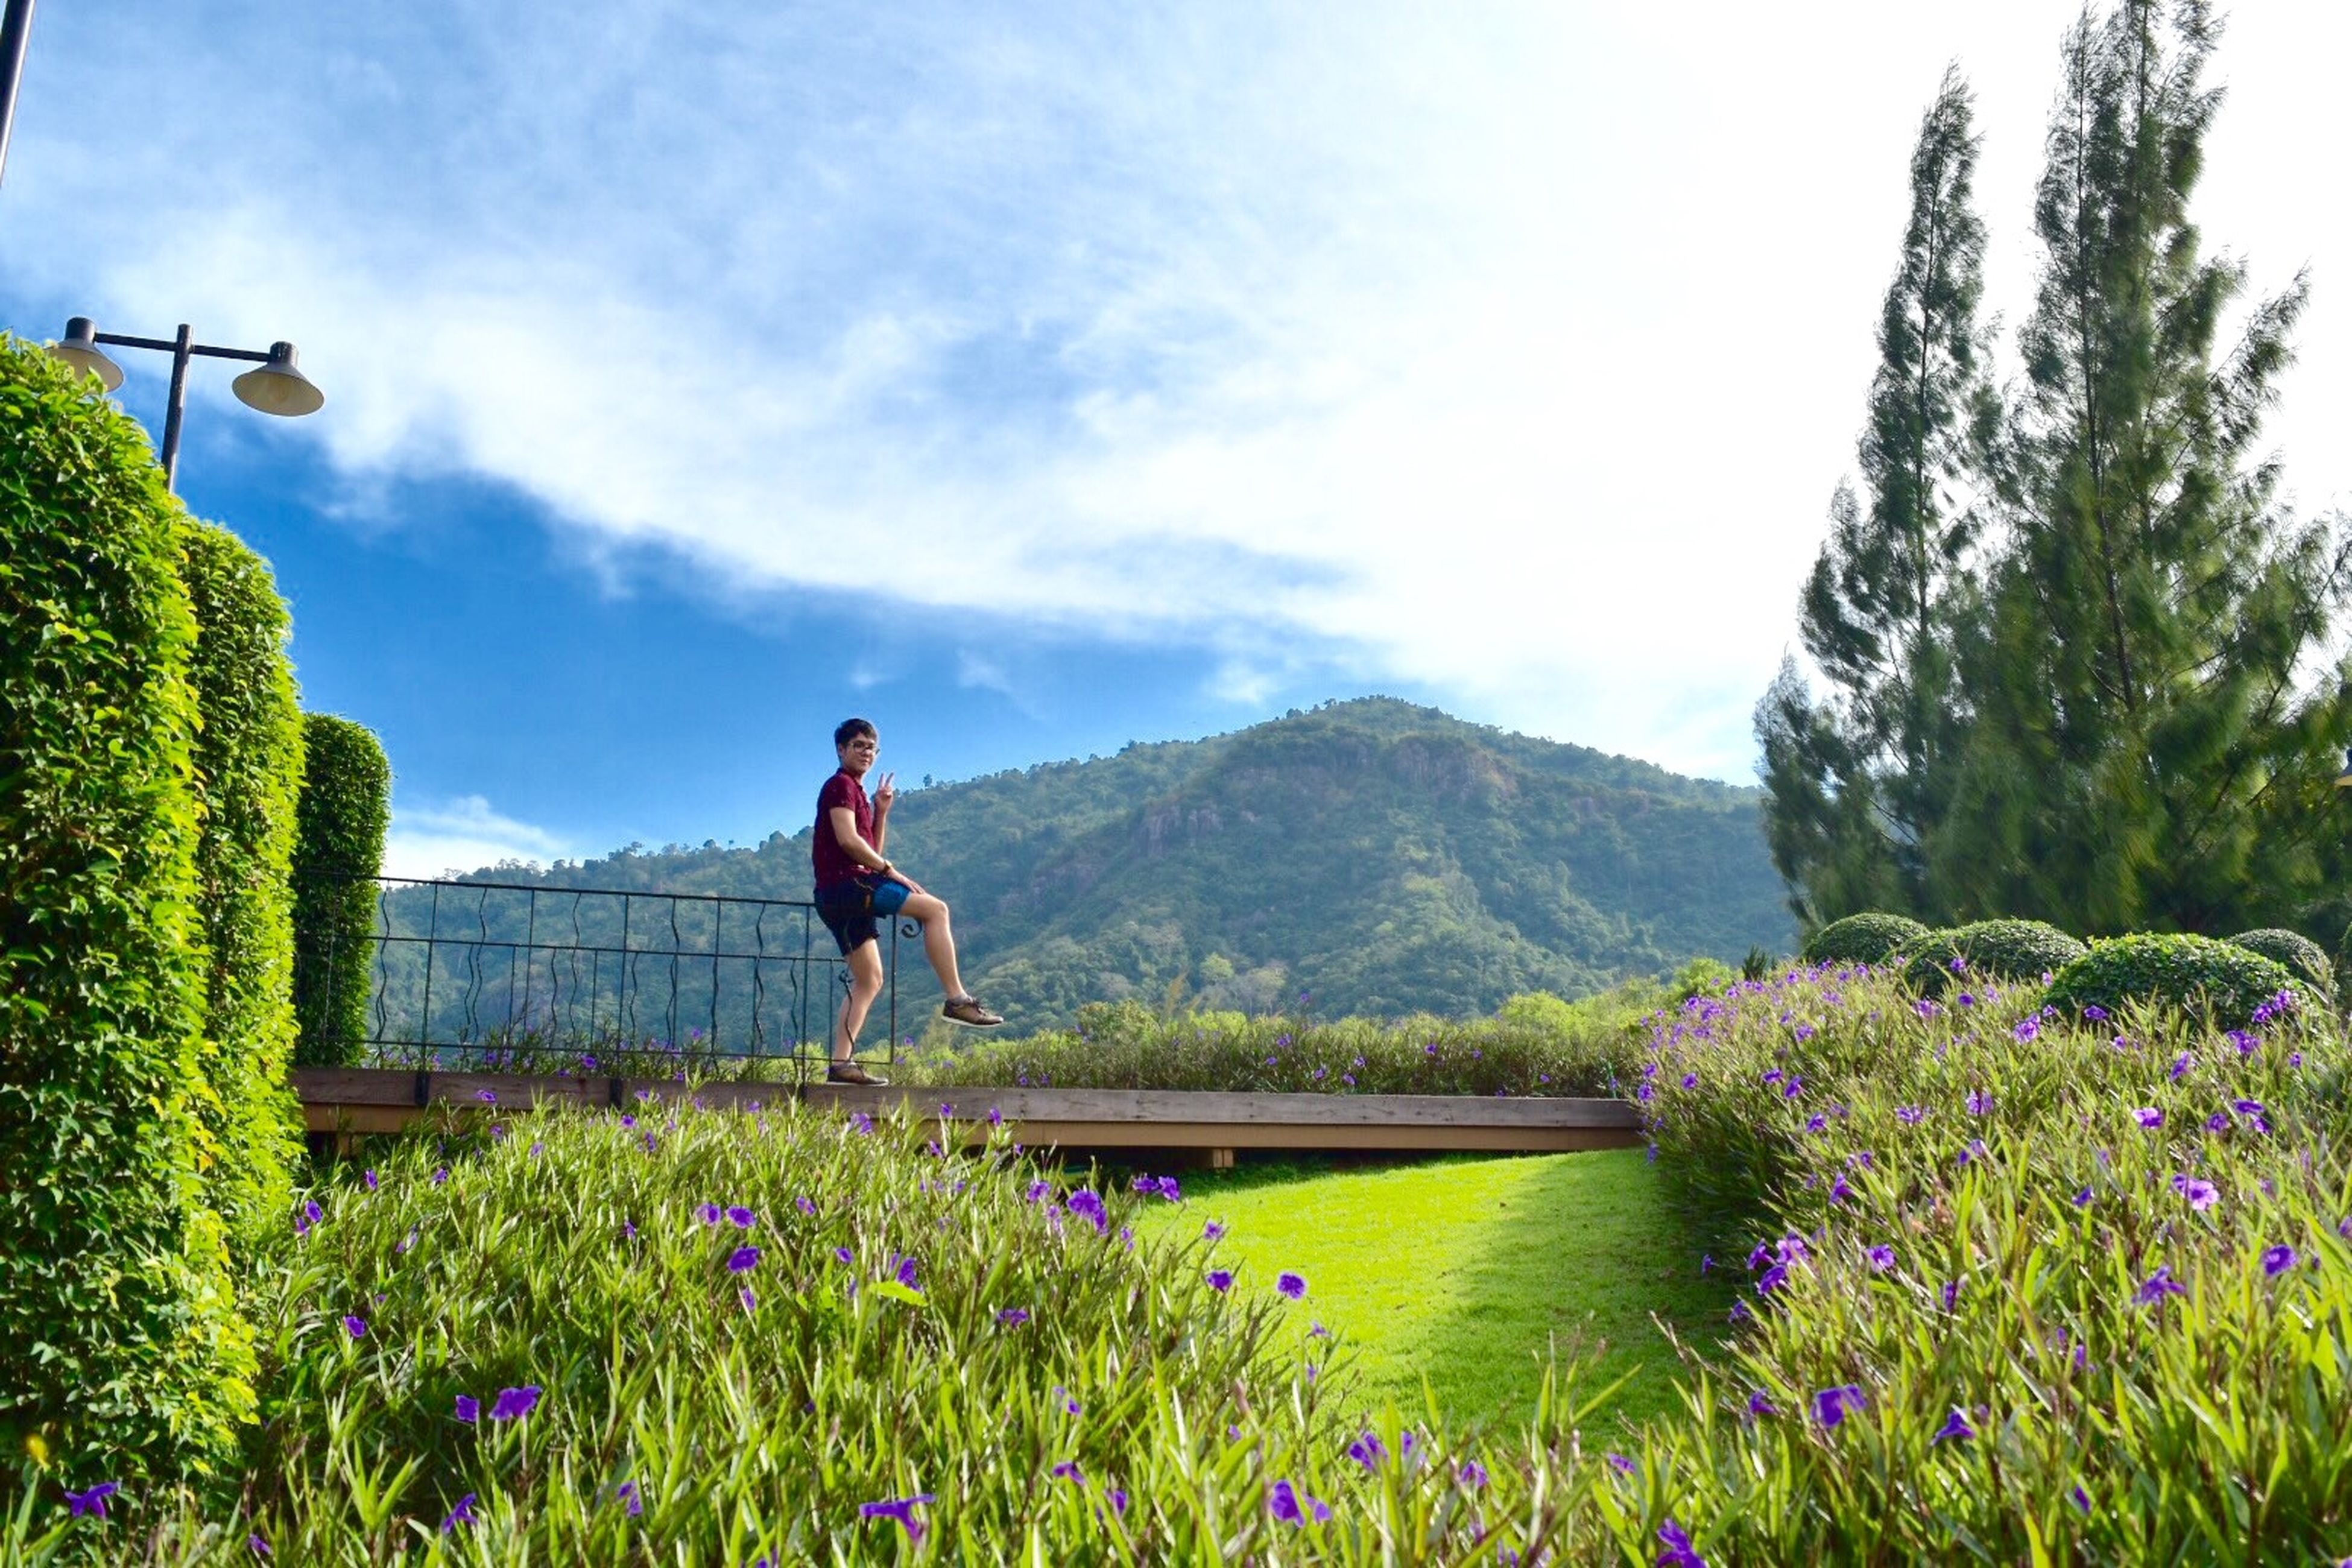 lifestyles, leisure activity, full length, casual clothing, sky, rear view, mountain, plant, standing, flower, nature, person, beauty in nature, men, growth, sitting, grass, field